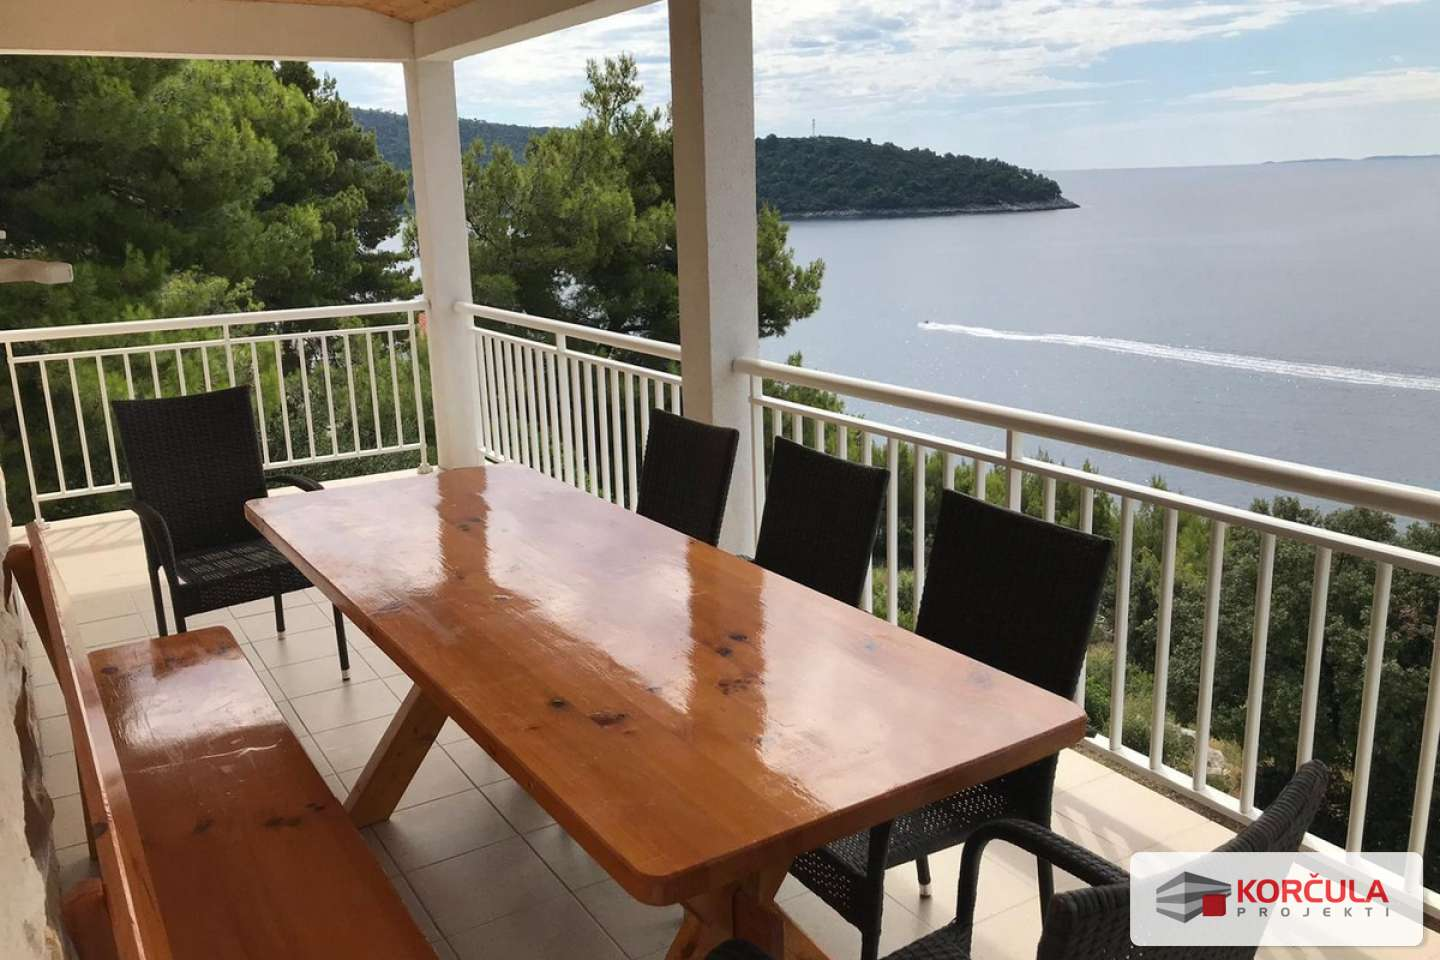 Comfortable first floor apartment with spacious garden, garage and magnificent view to the open sea